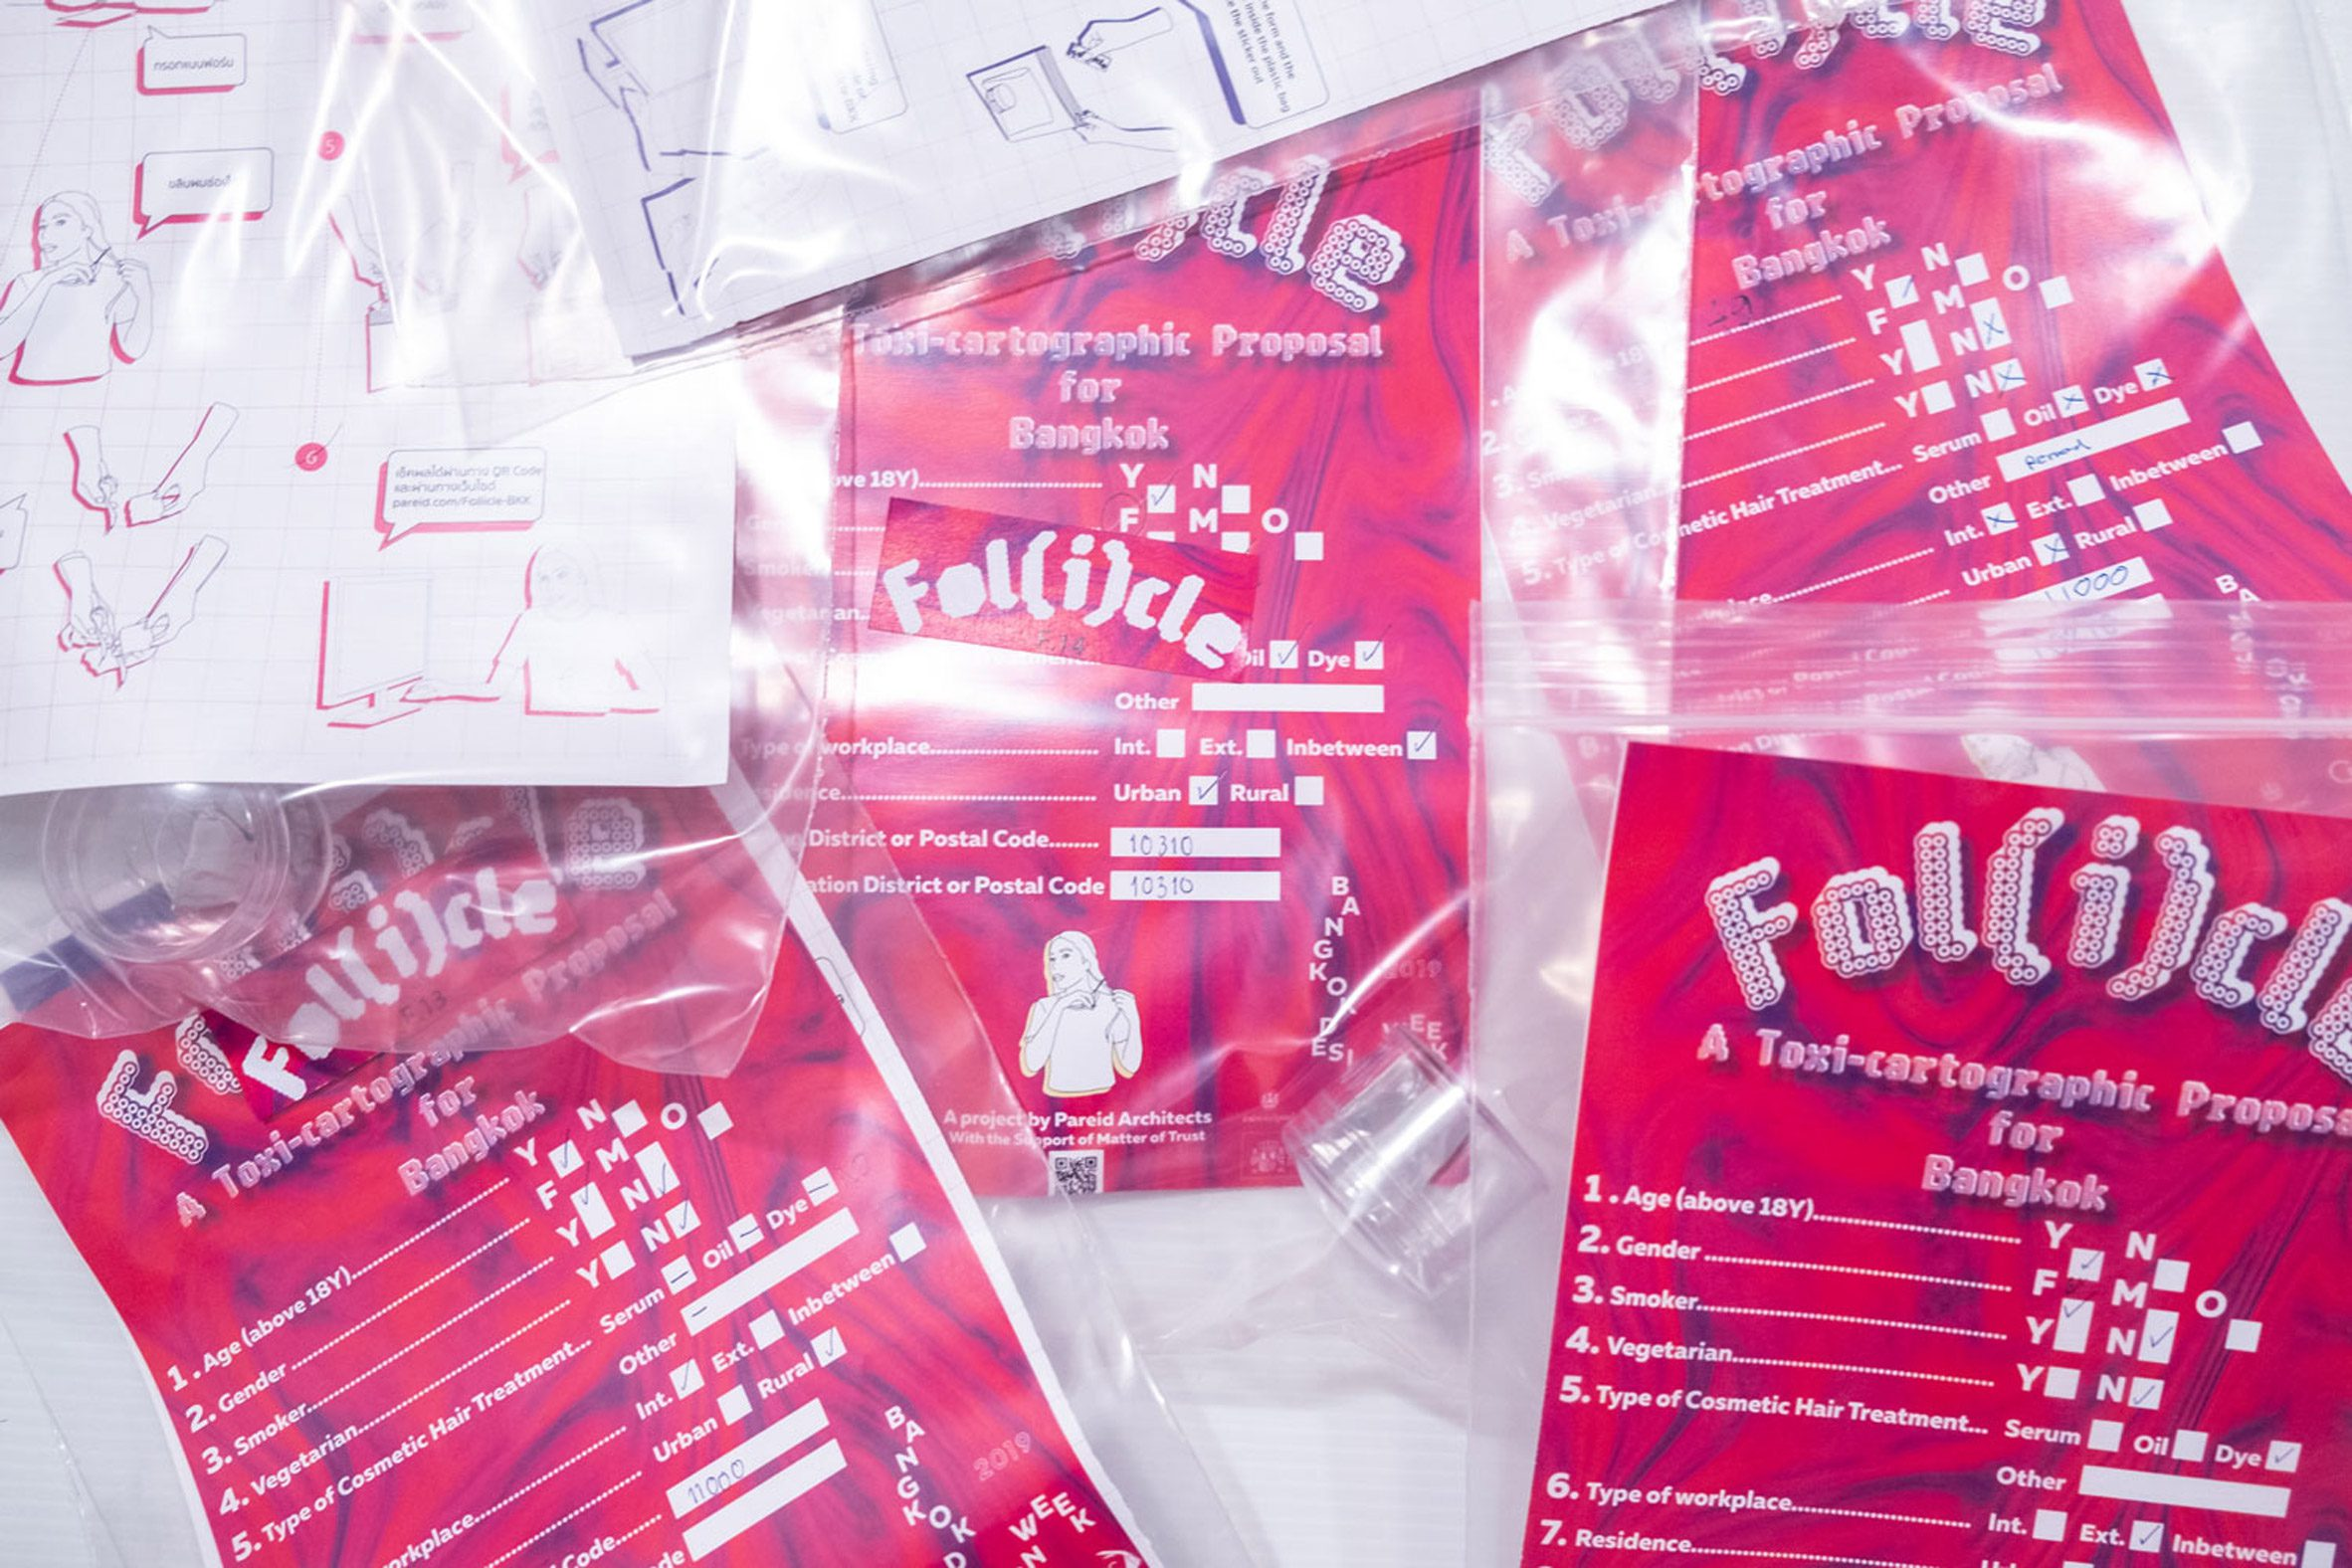 Participation form for Follicle, a project by Pareid at Bangkok Design Week